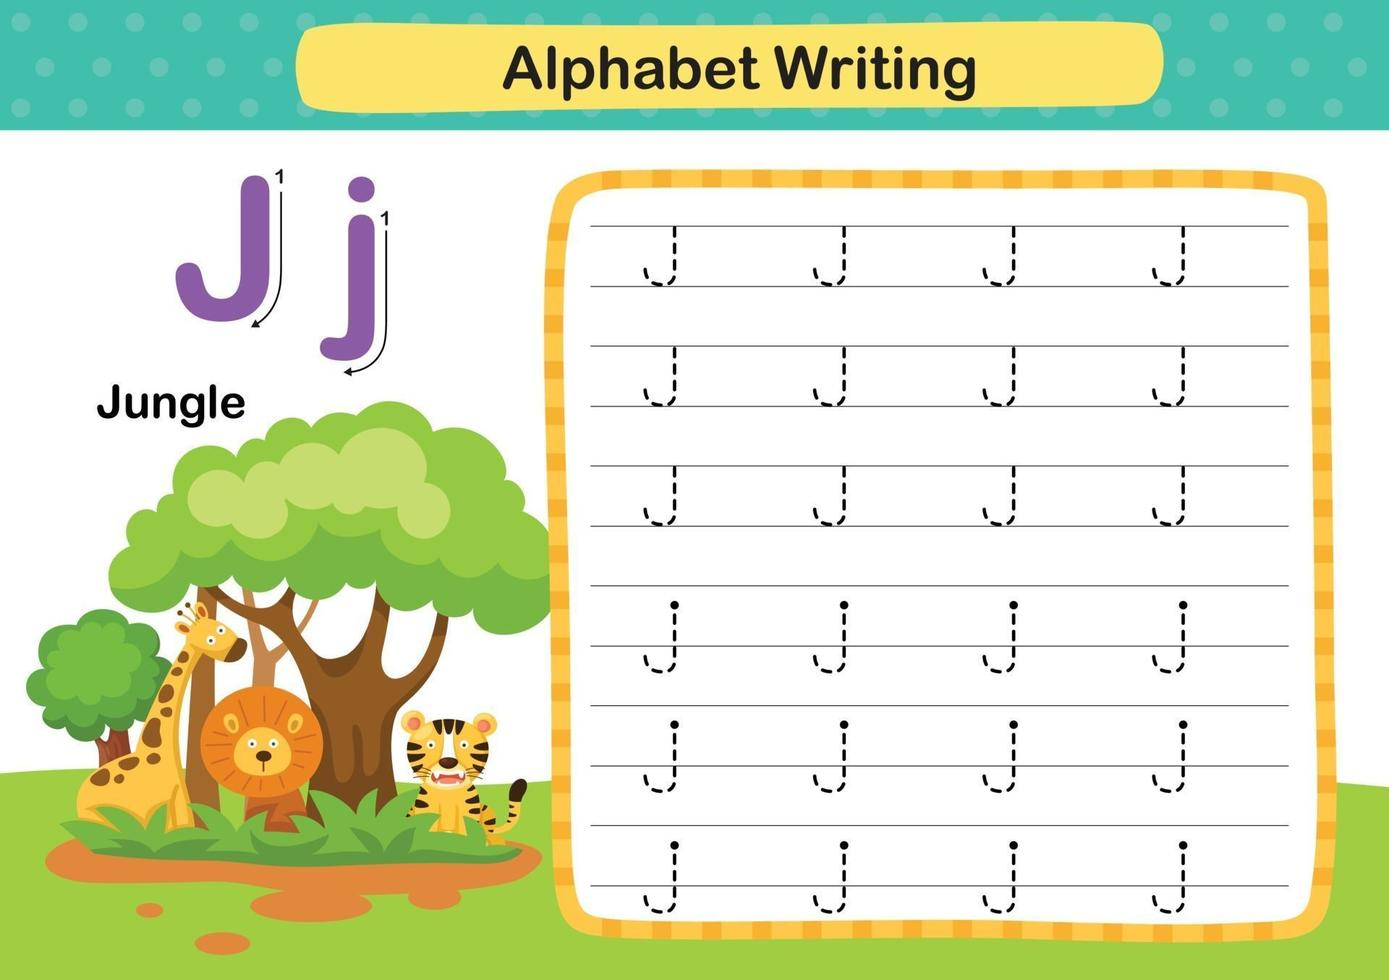 Alphabet Letter J-Jungle exercise with cartoon vocabulary illustration, vector